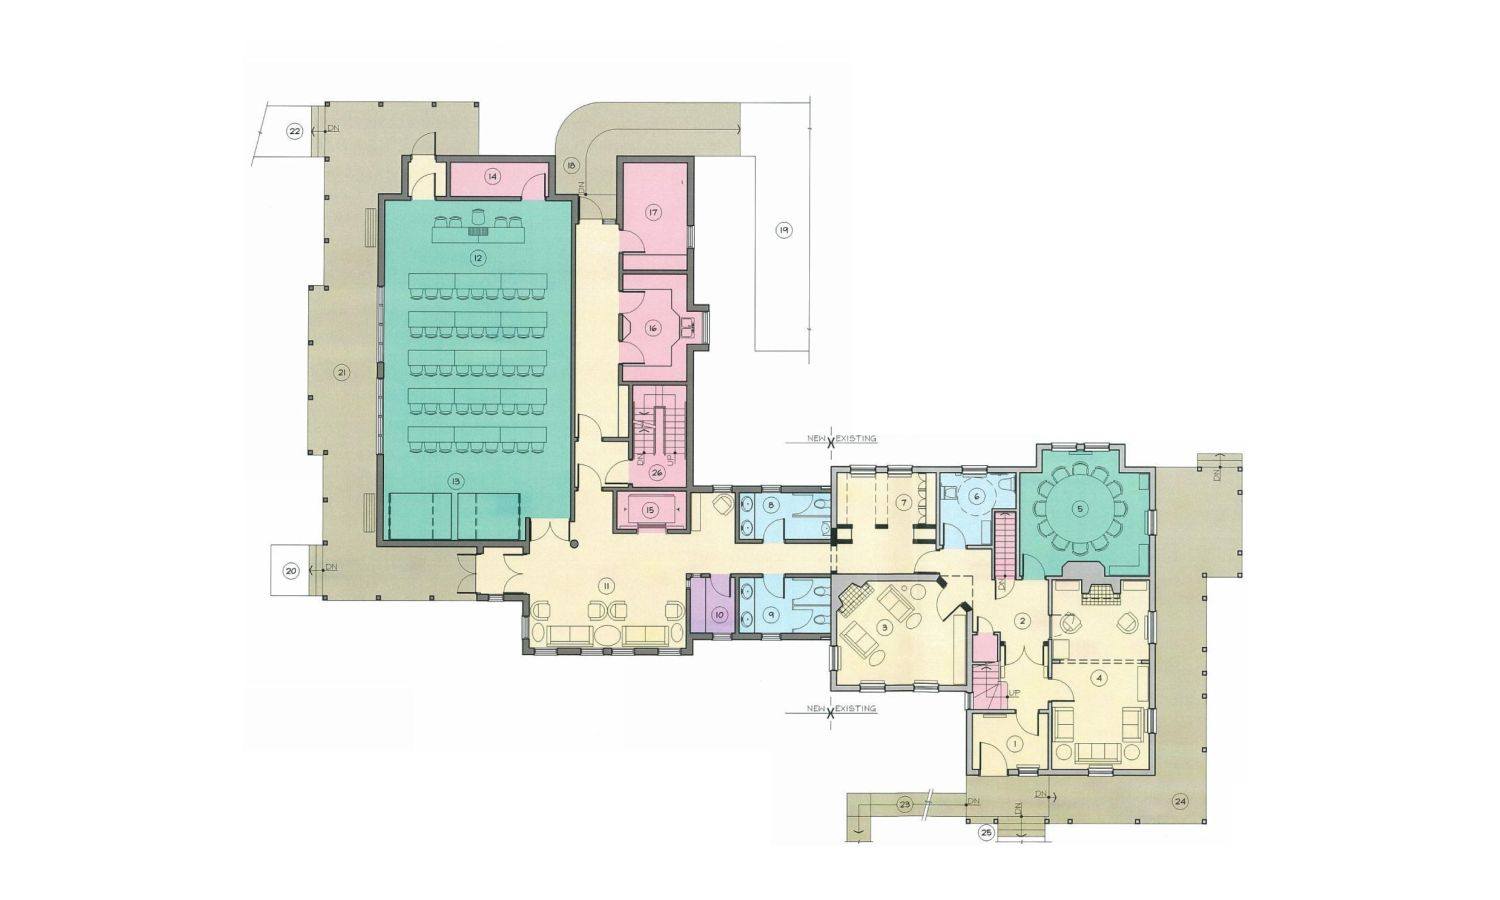 Proposed Adaptive Reuse Floor Plan with Addition